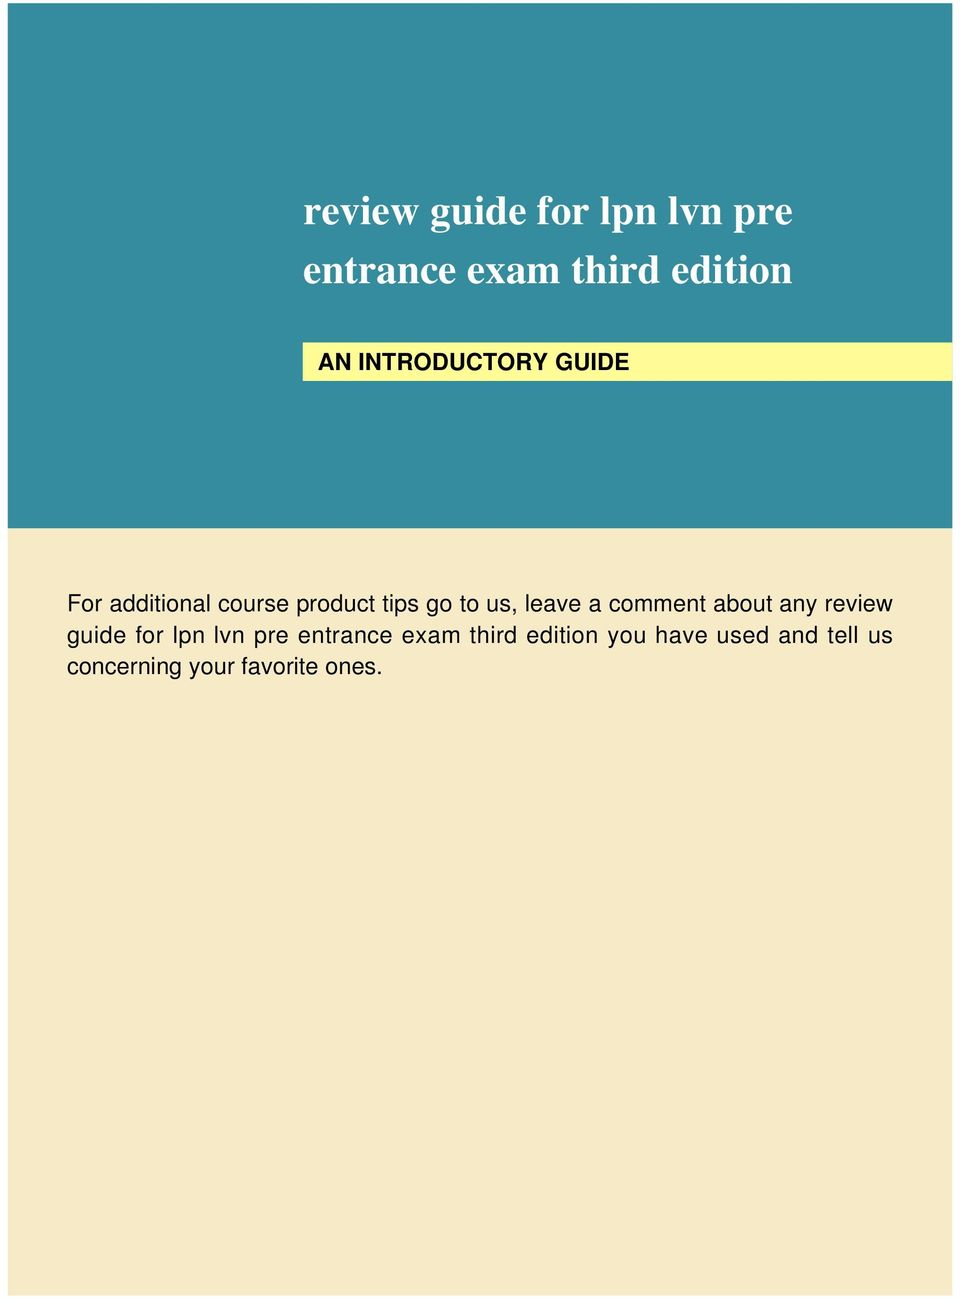 leave a comment about any review guide for lpn lvn pre entrance